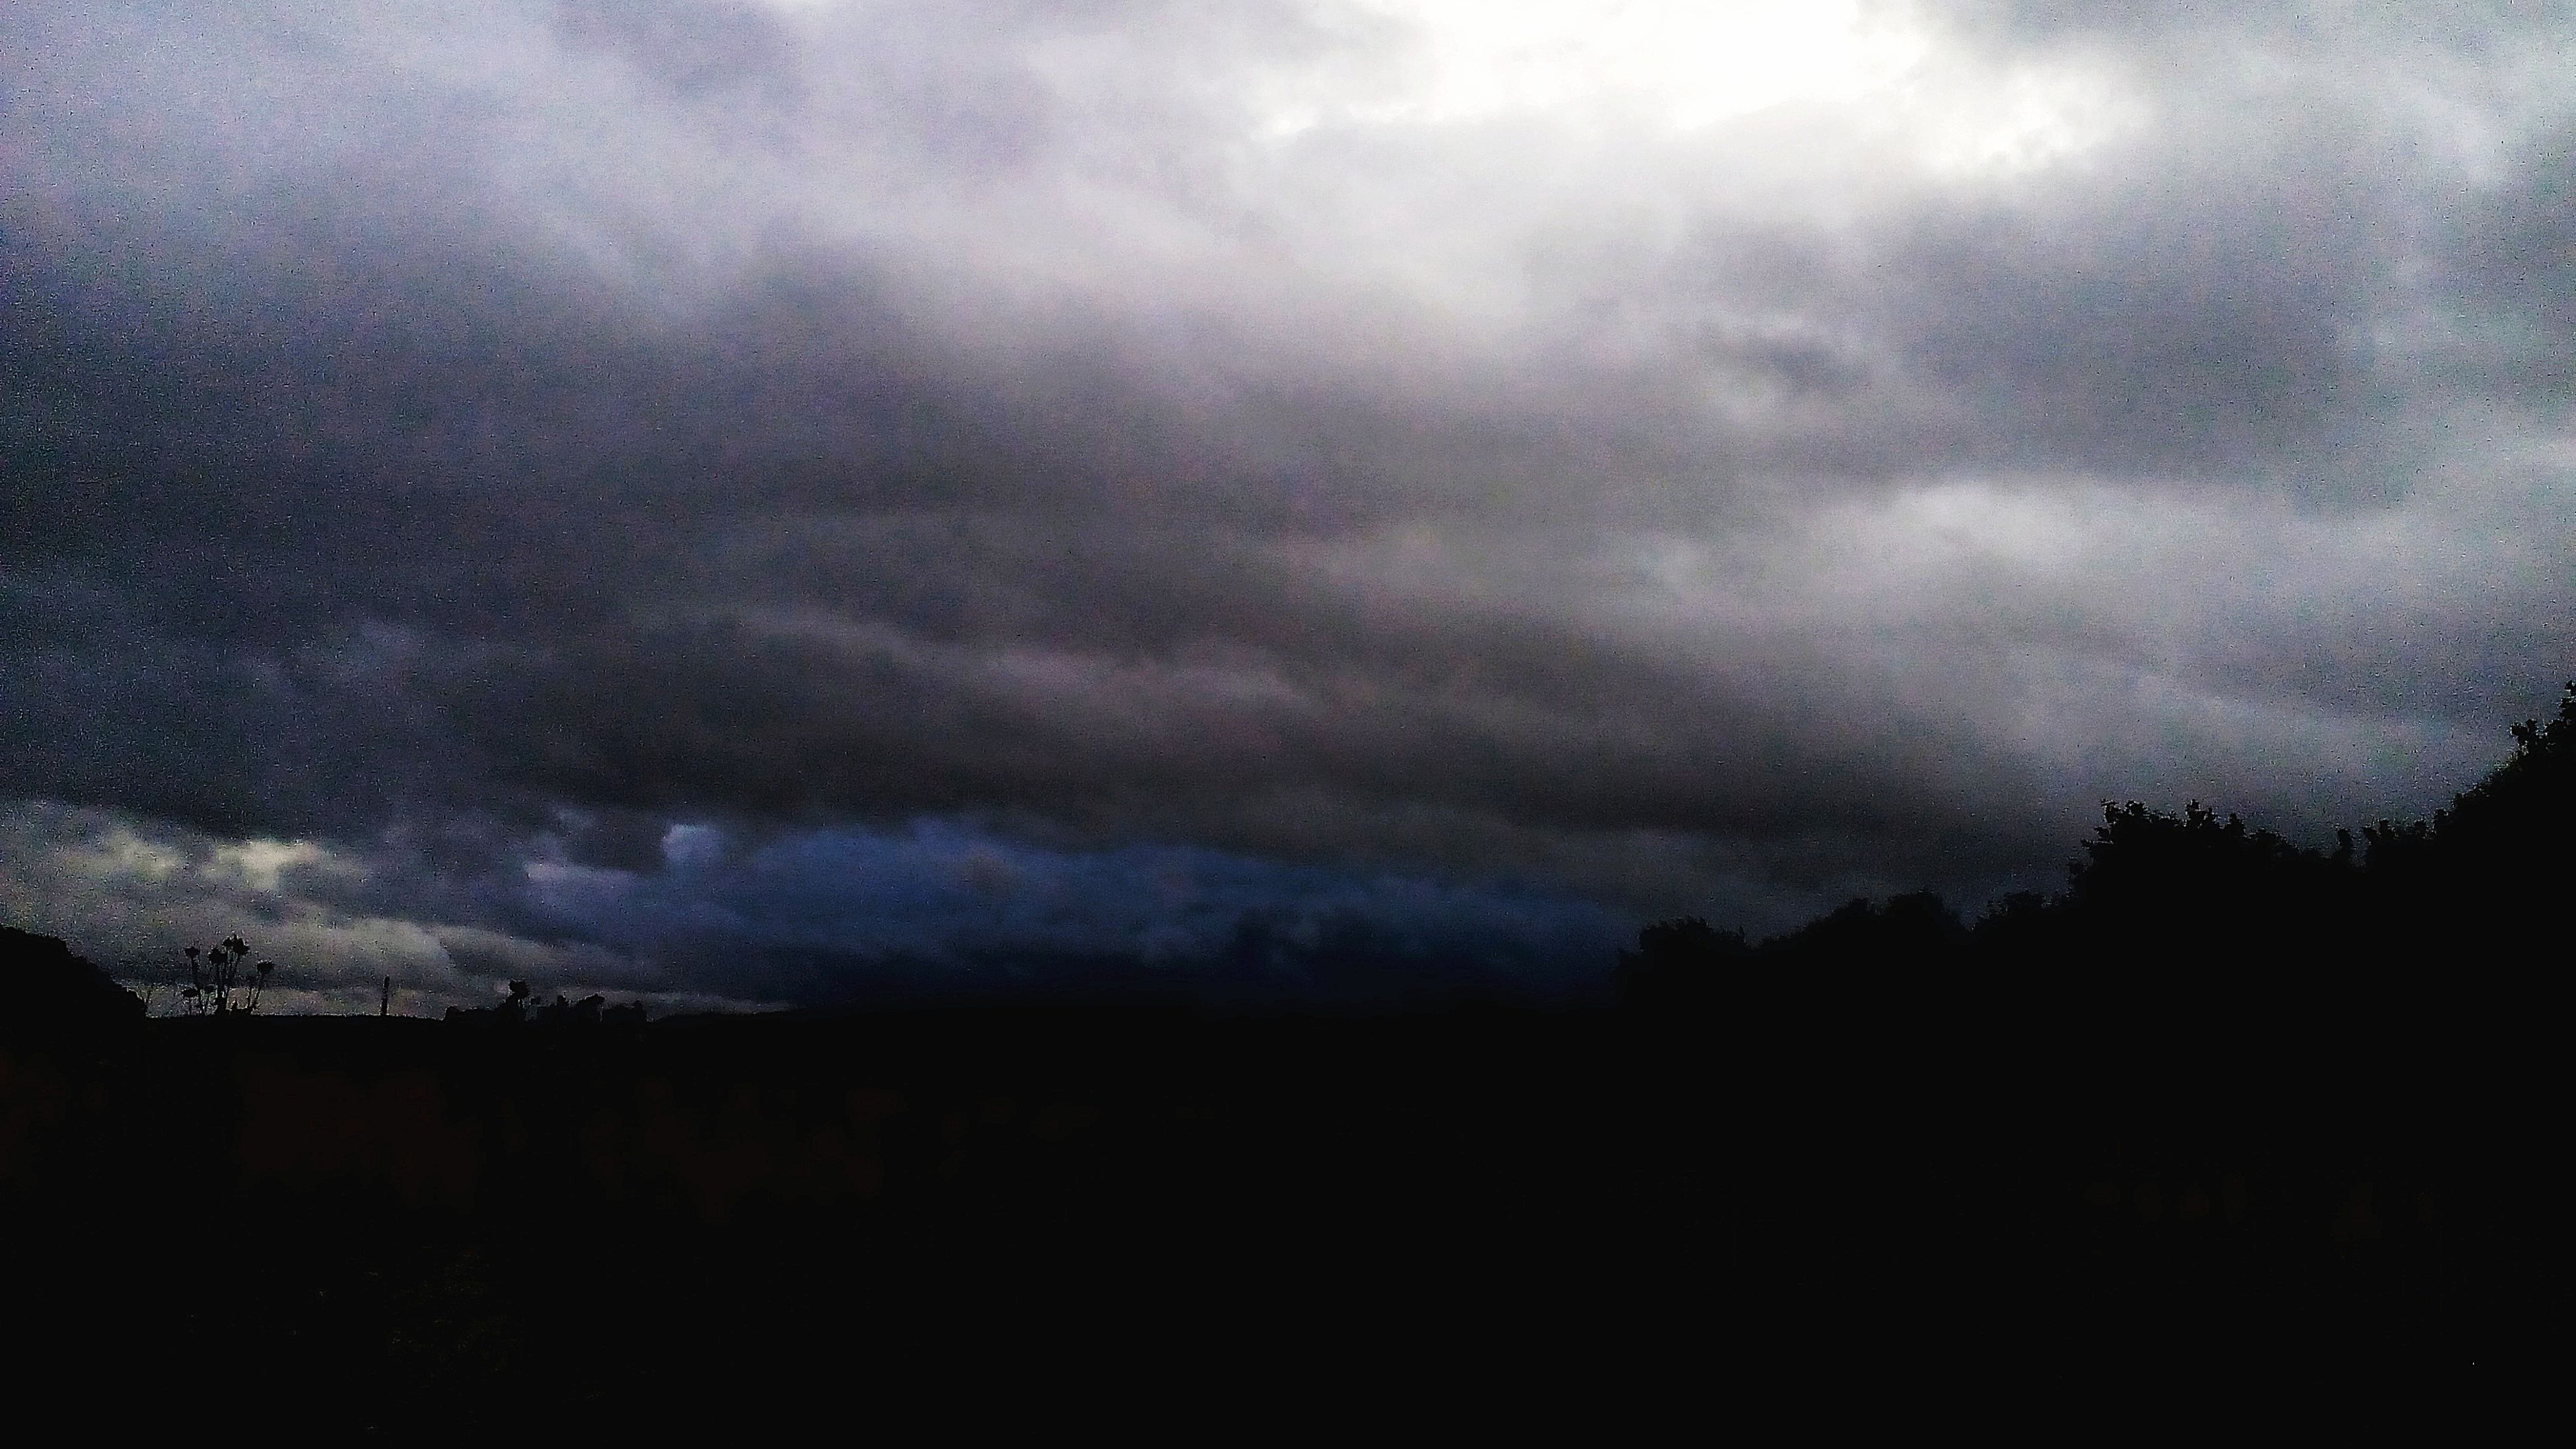 silhouette, sky, tranquil scene, scenics, tranquility, landscape, dark, beauty in nature, nature, cloud - sky, outline, majestic, storm cloud, cloud, cloudy, outdoors, calm, ominous, dramatic sky, non-urban scene, no people, cloudscape